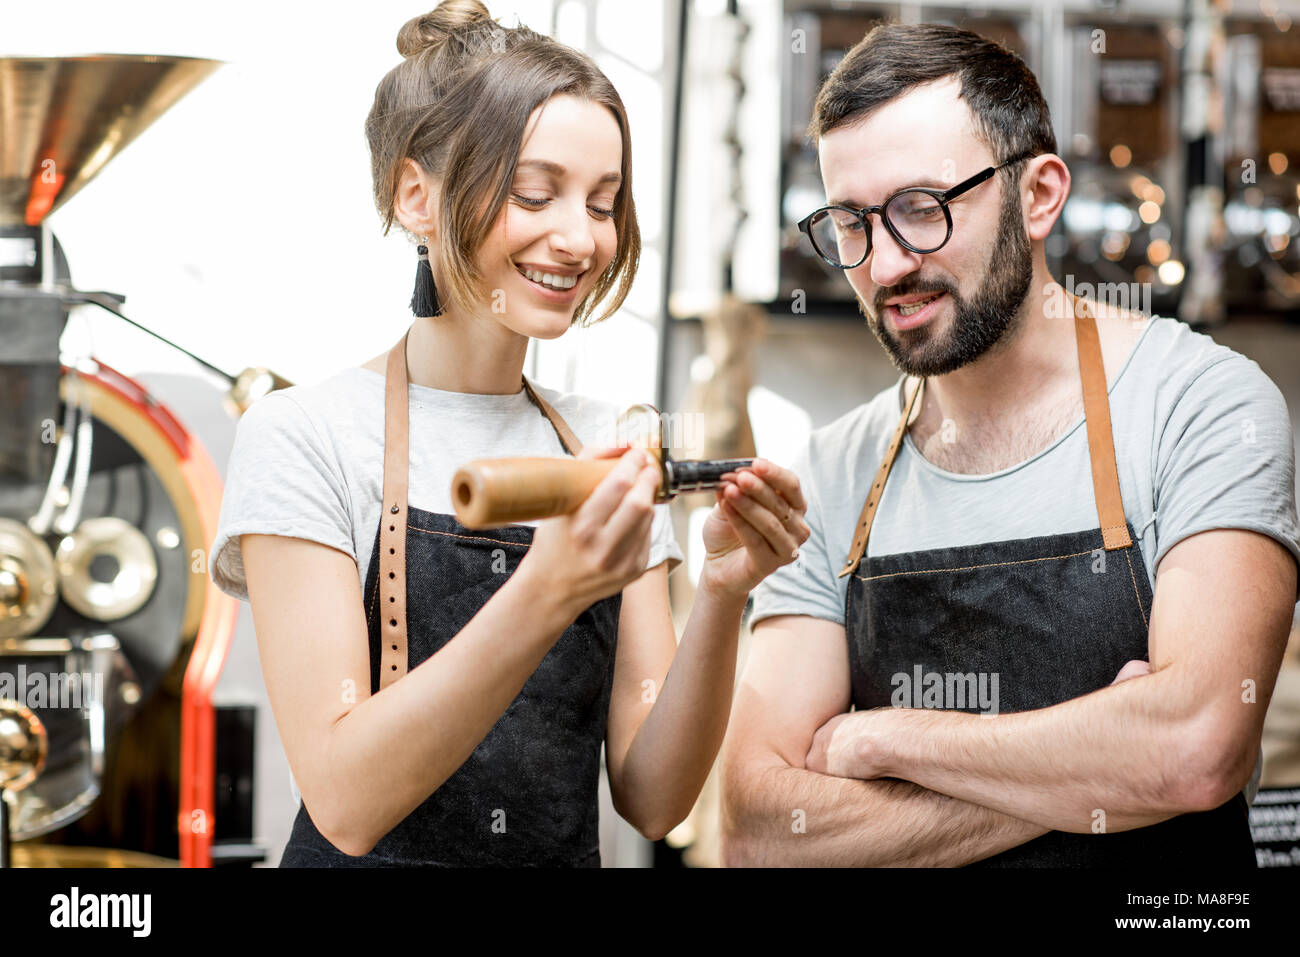 Couple of baristas in uniform checking the quality of roasted coffee beans standing near the roaster machine - Stock Image